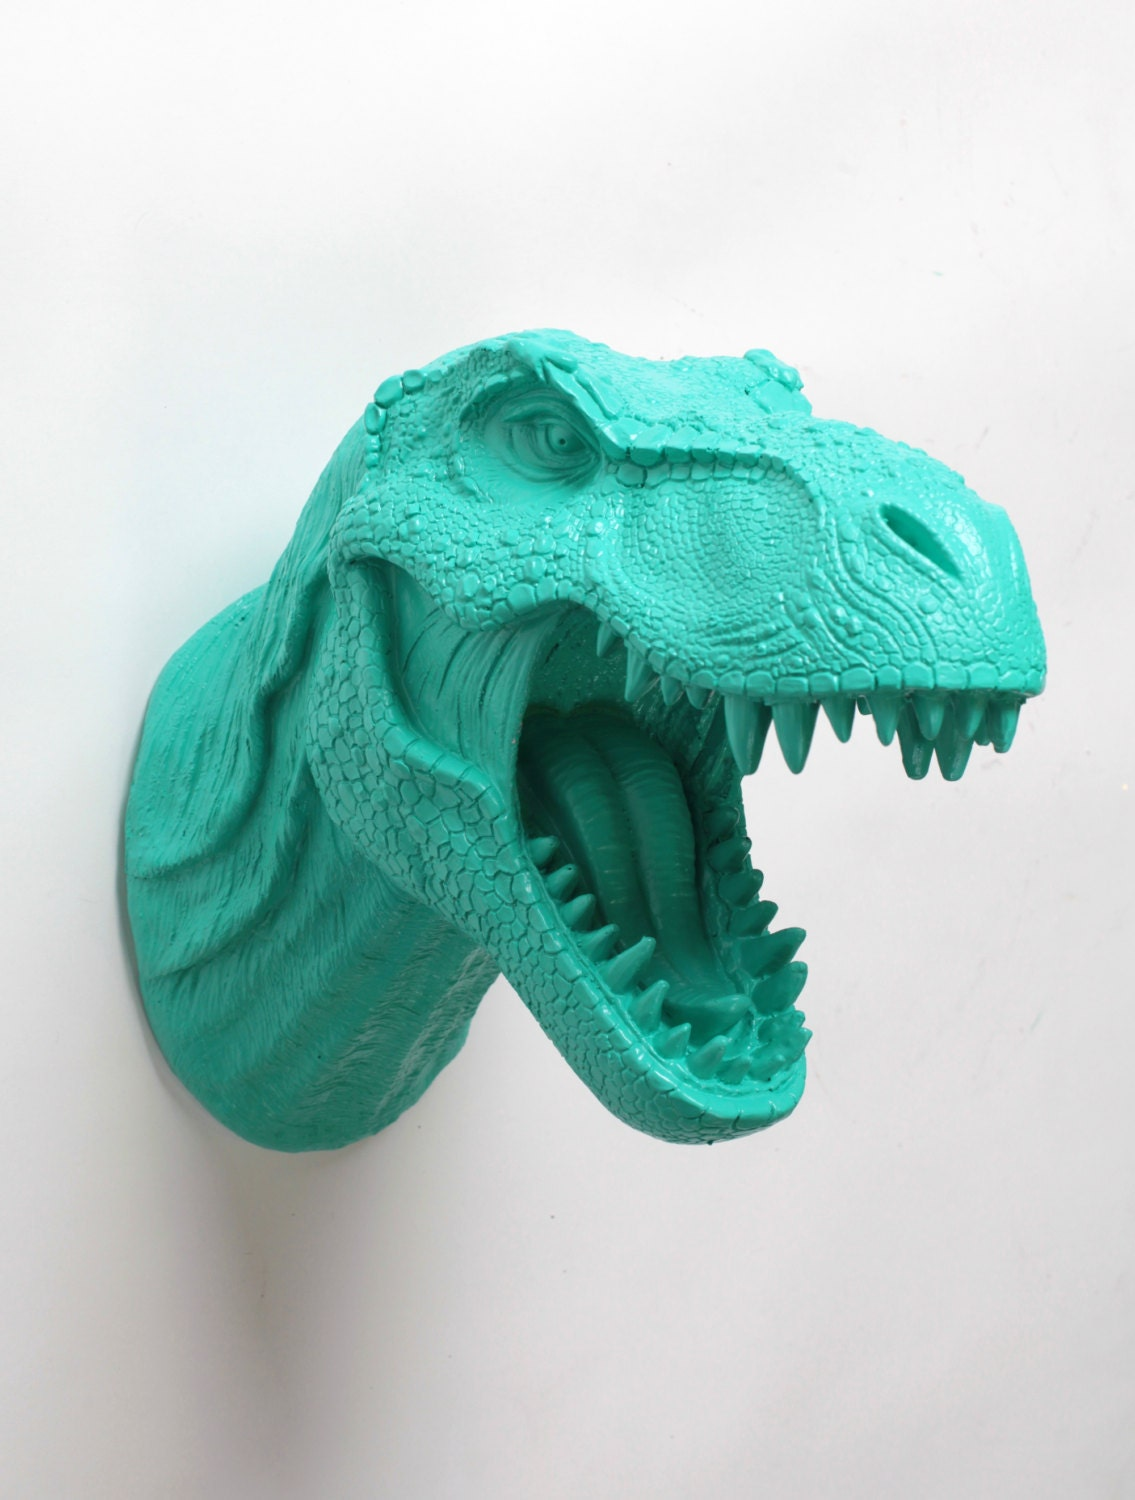 Dinosaur Head Wall Mount The Crowley Turquoise Resin T Rex